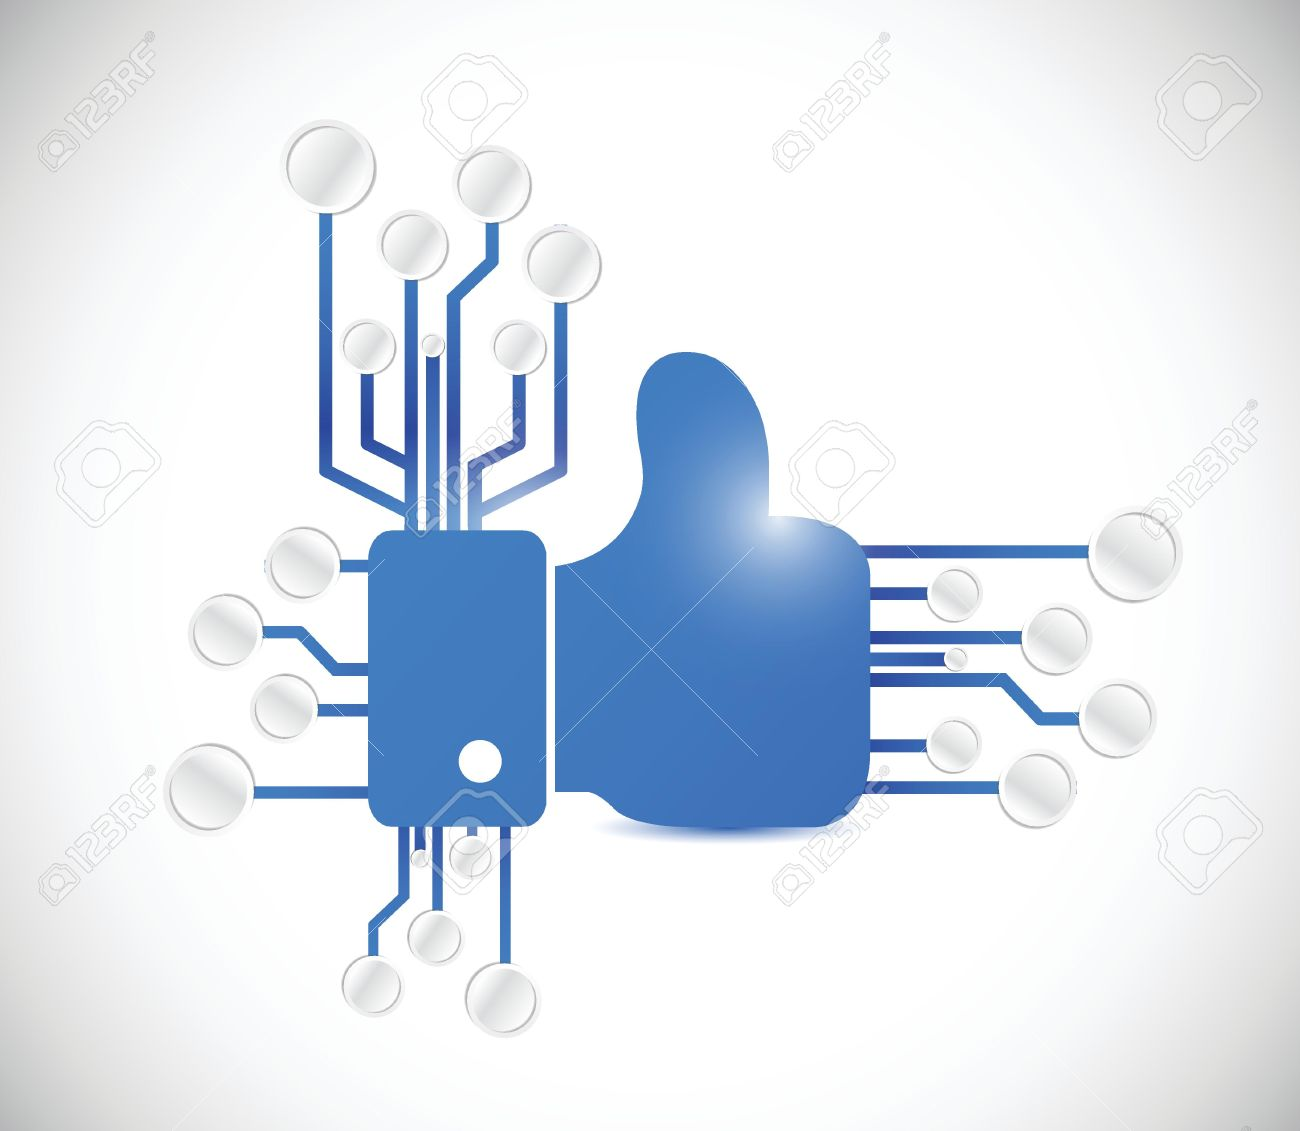 26504309-thumbs-up-and-circuit-board-connection-illustration-design-over-a-white-background